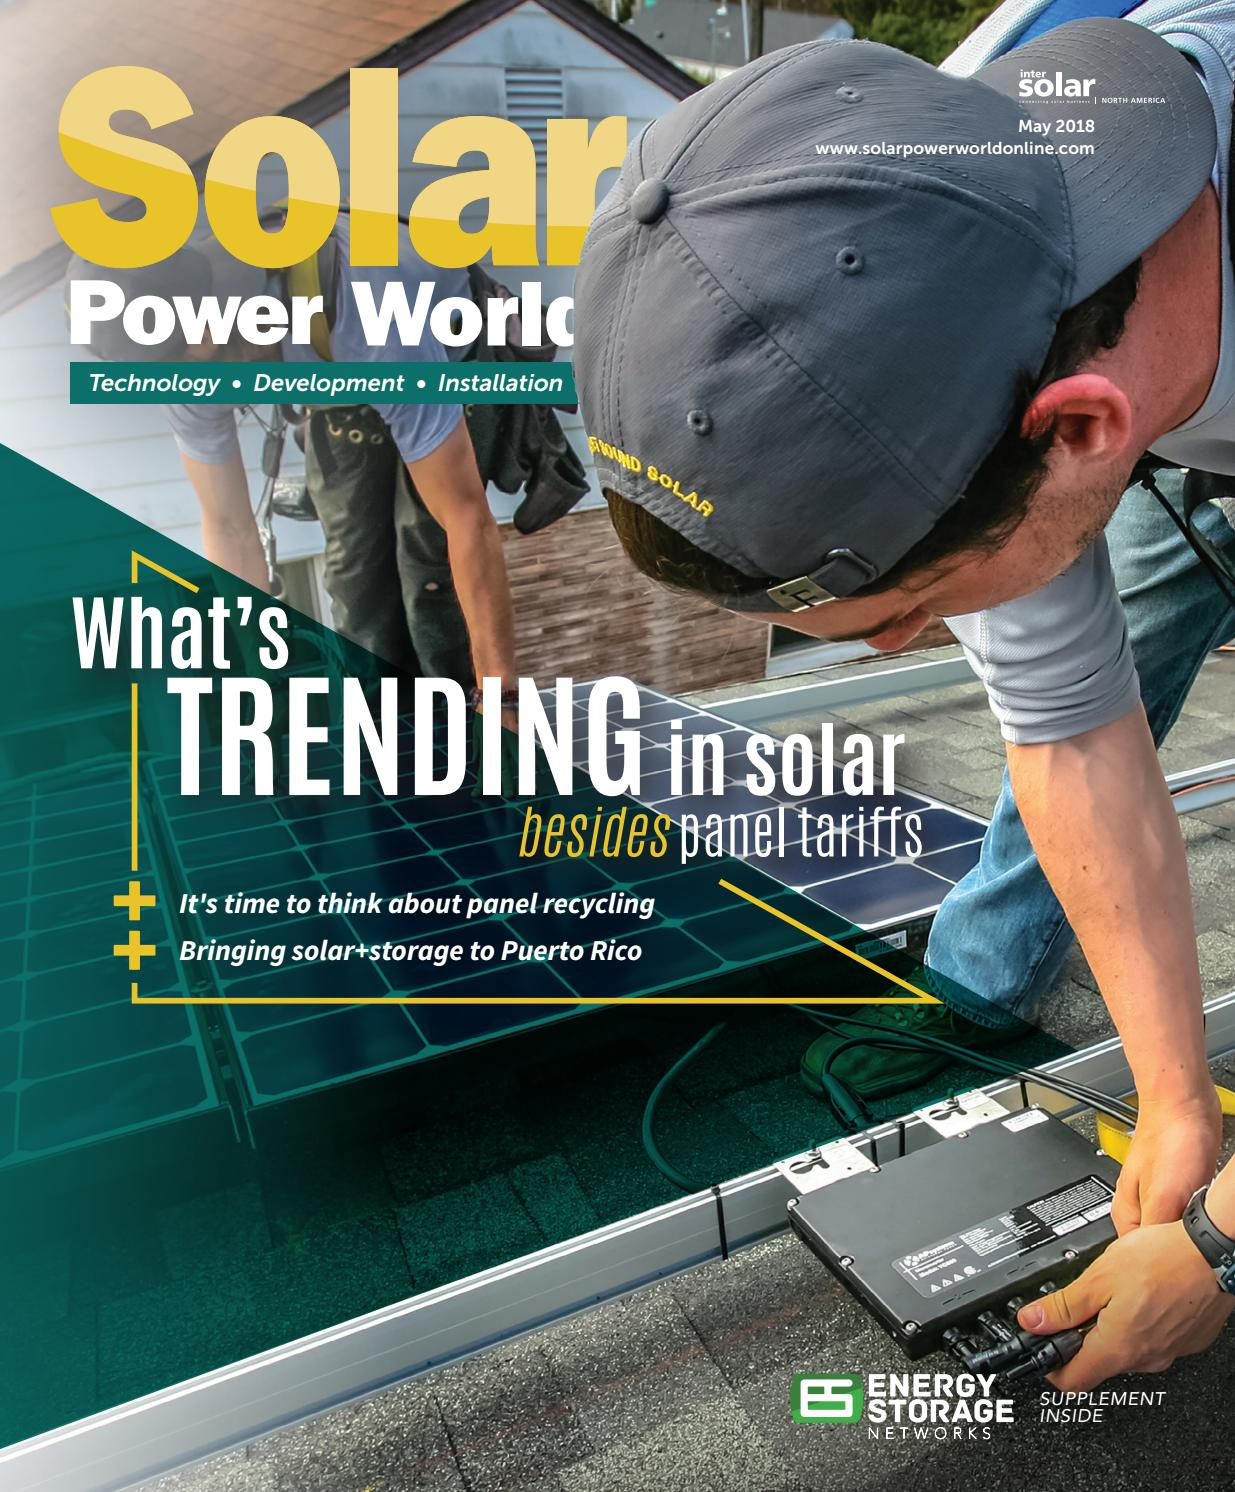 Solar Power World May 2018 By Wtwh Media Llc Issuu Nitrous Express Wiring Diagram On Up Battery Kill Switch